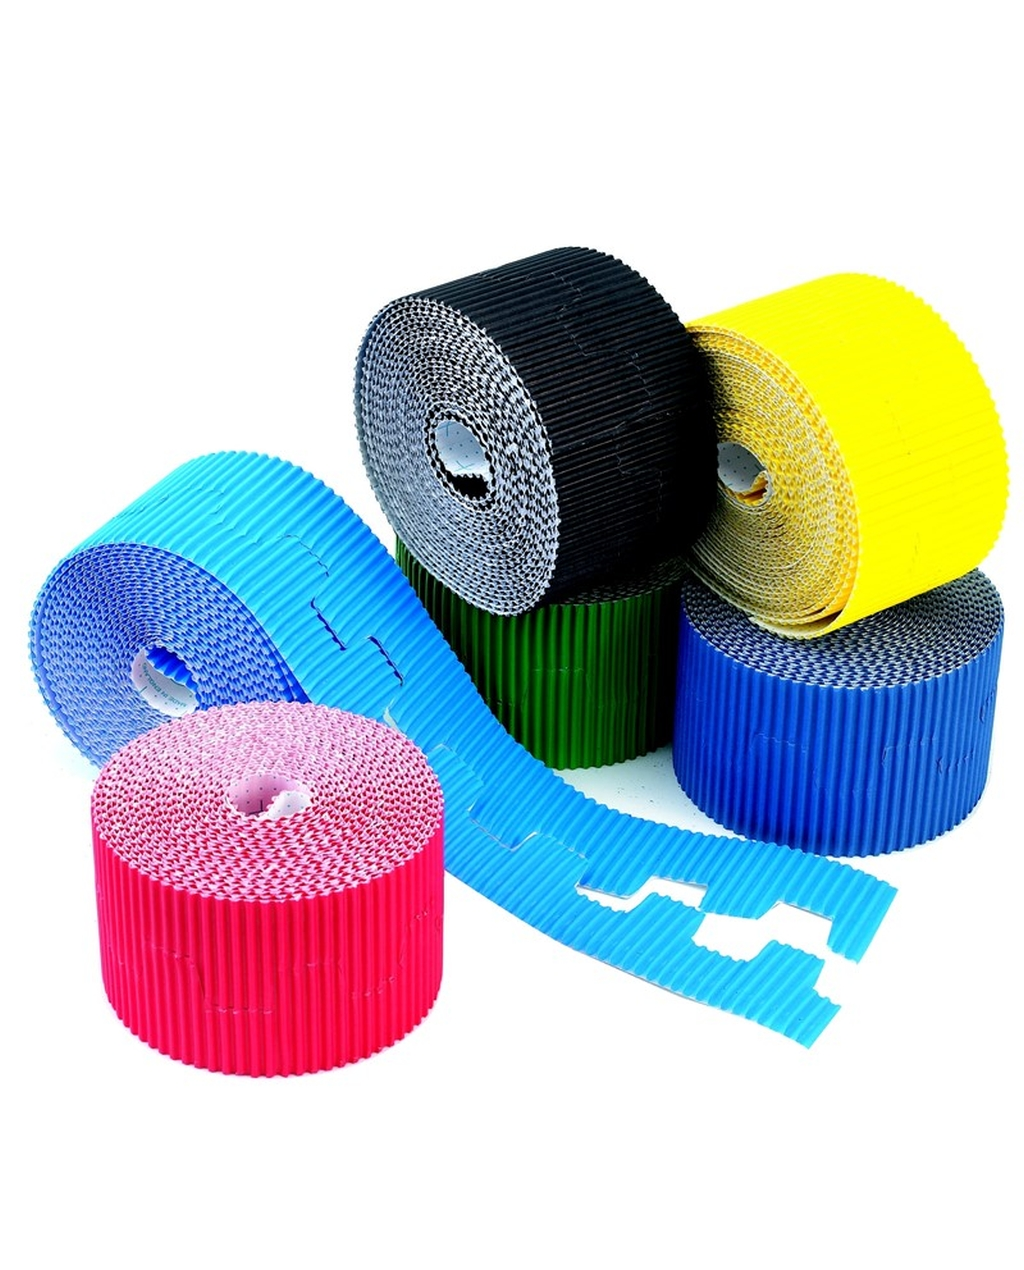 Castellated Corrugated Border Roll Pack